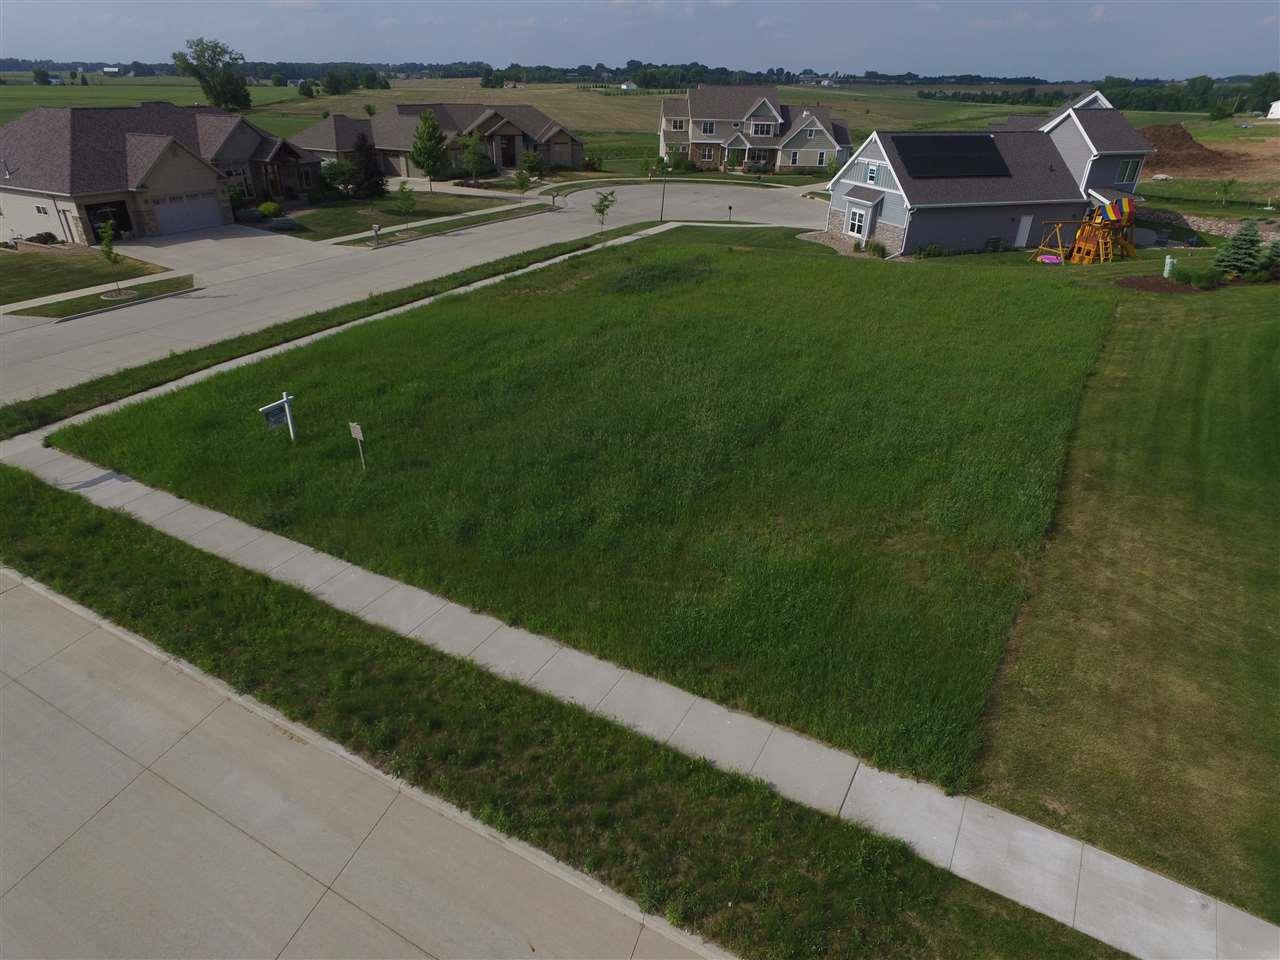 5664 N Rosemary Drive, Appleton, WI 54913 (#50175583) :: Todd Wiese Homeselling System, Inc.